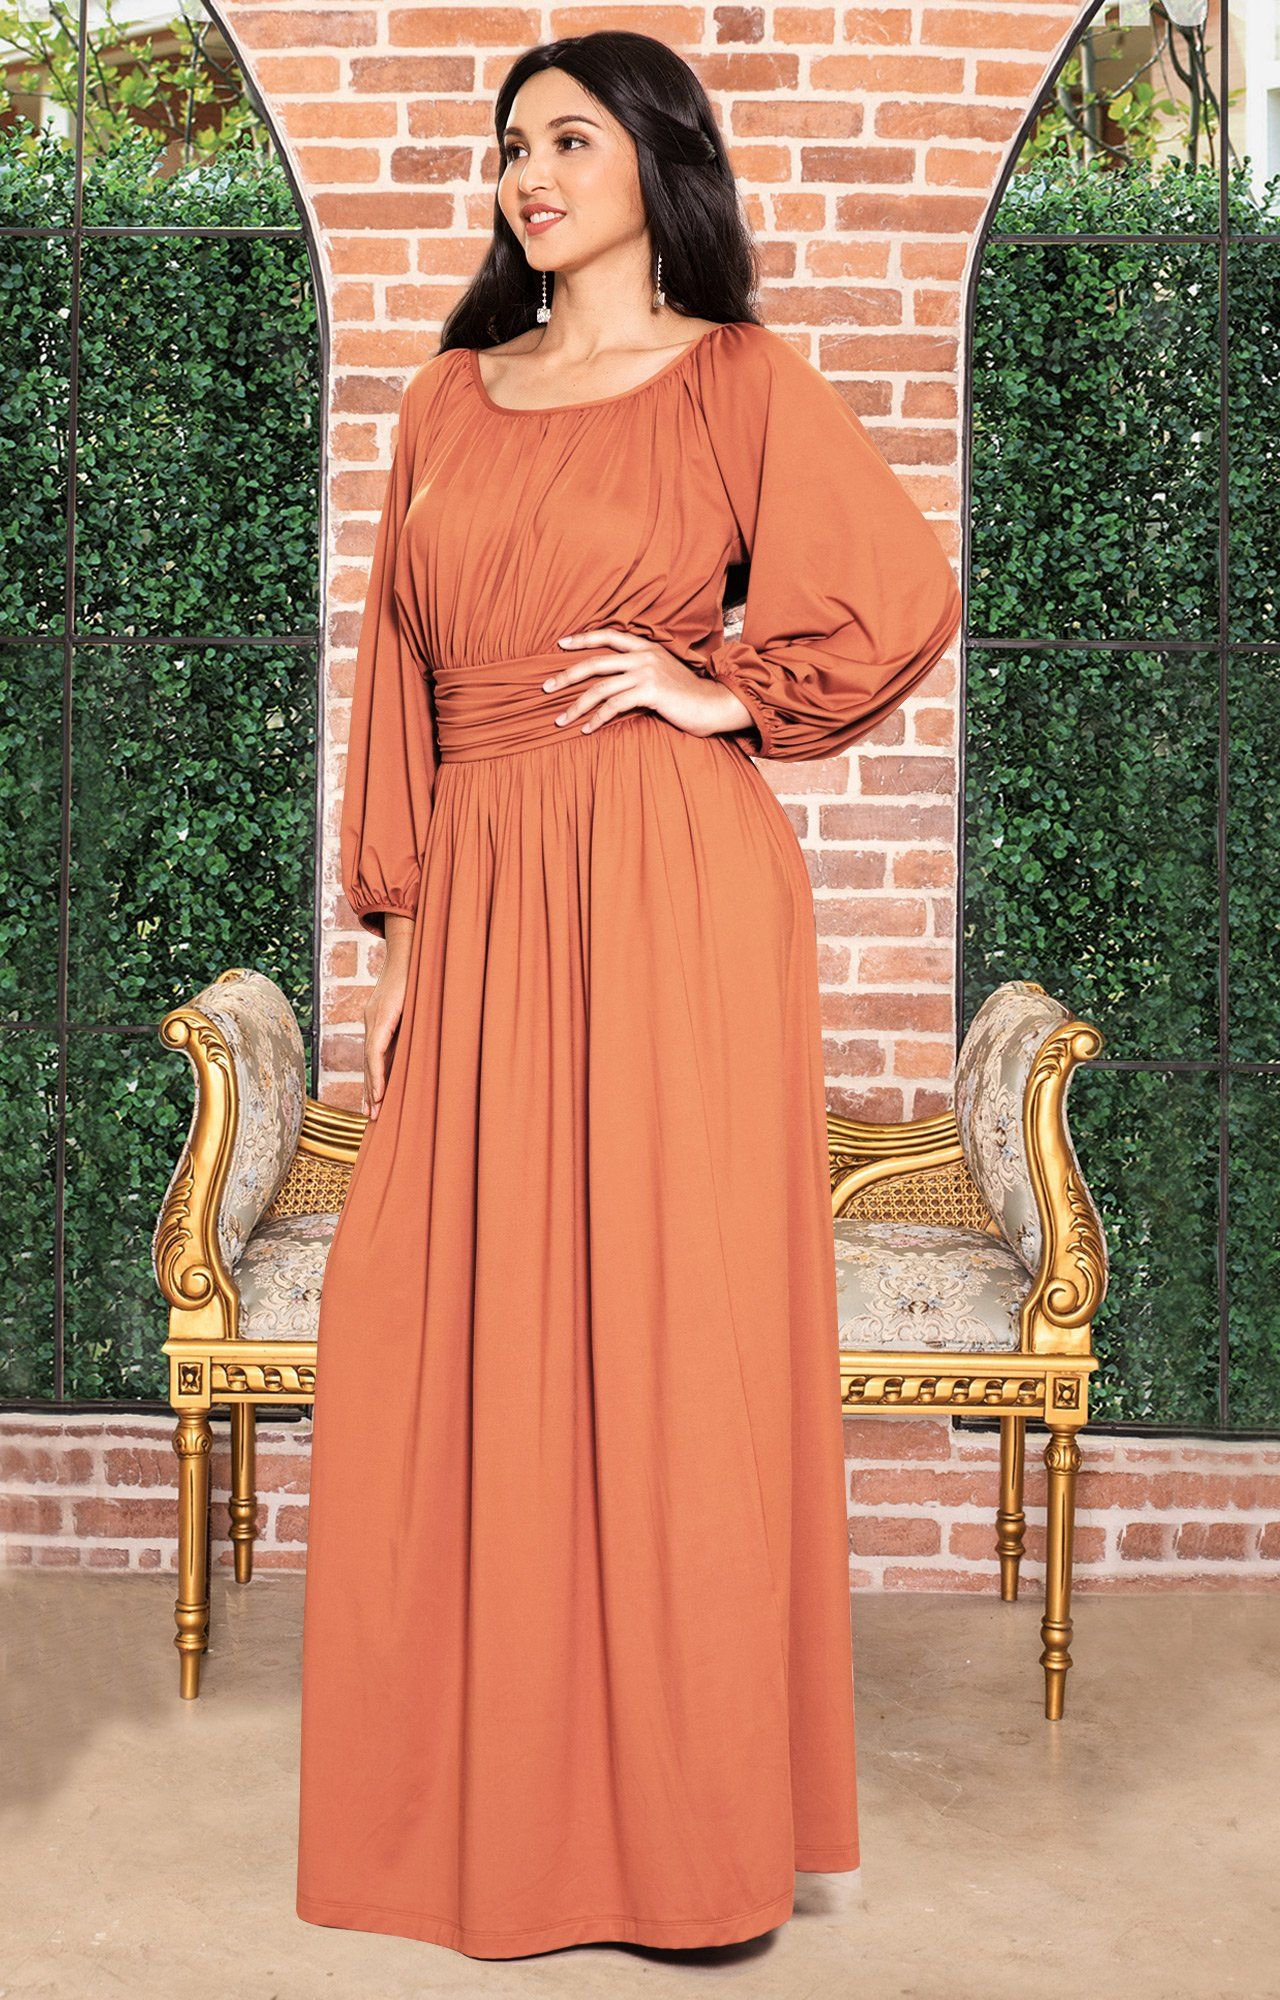 df4ea7620bfd Maternity Fashion - KOH KOH Plus Size Women Long Sleeve Sleeves Vintage  Peasant Empire Waist Fall Loose Flowy Fall Winter Casual Maternity Abaya  Gown Gowns ...